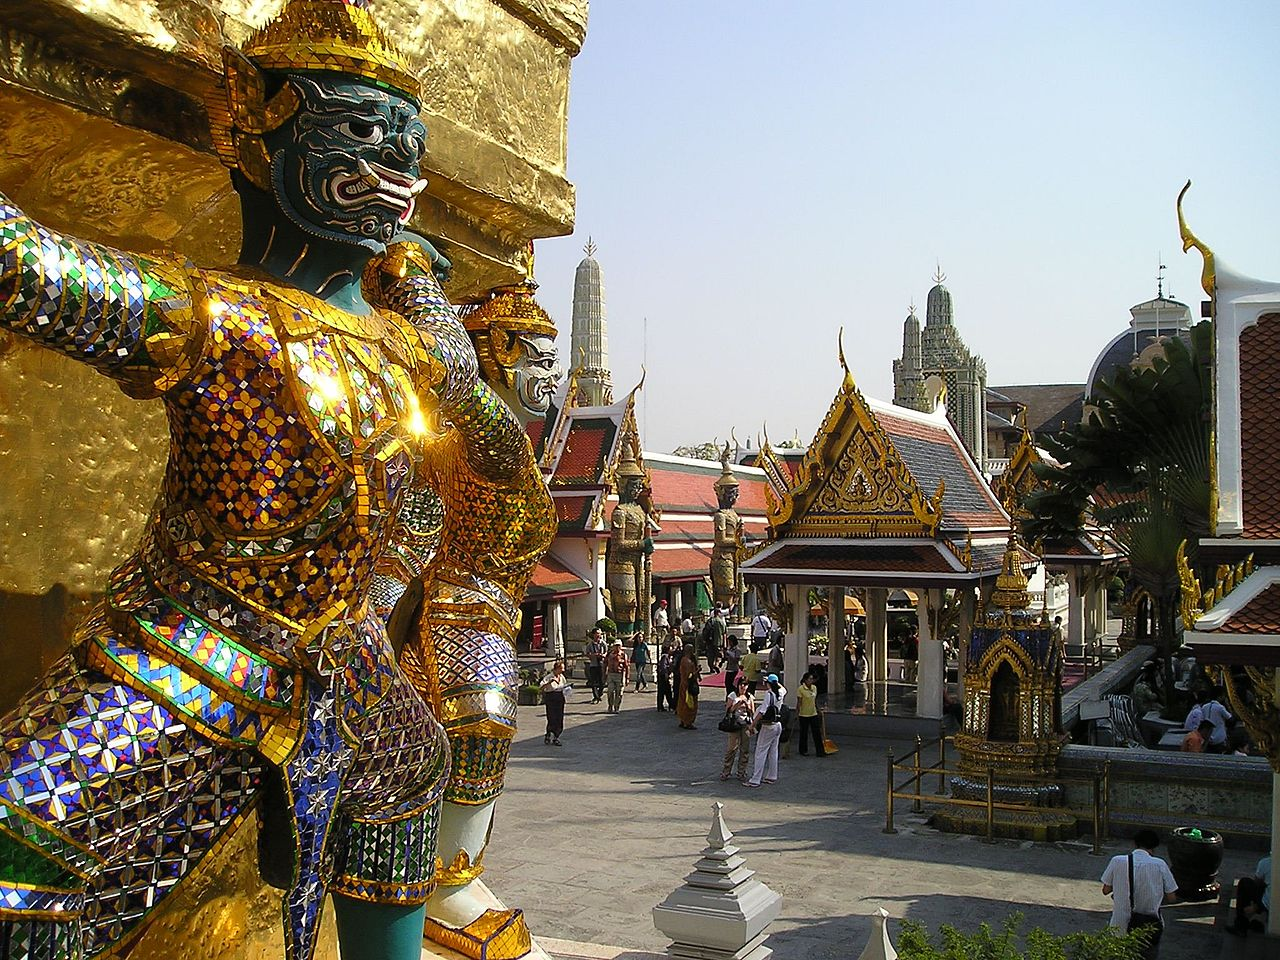 Crowds in yellow shirts show up to greet King and Queen at the Grand Palace